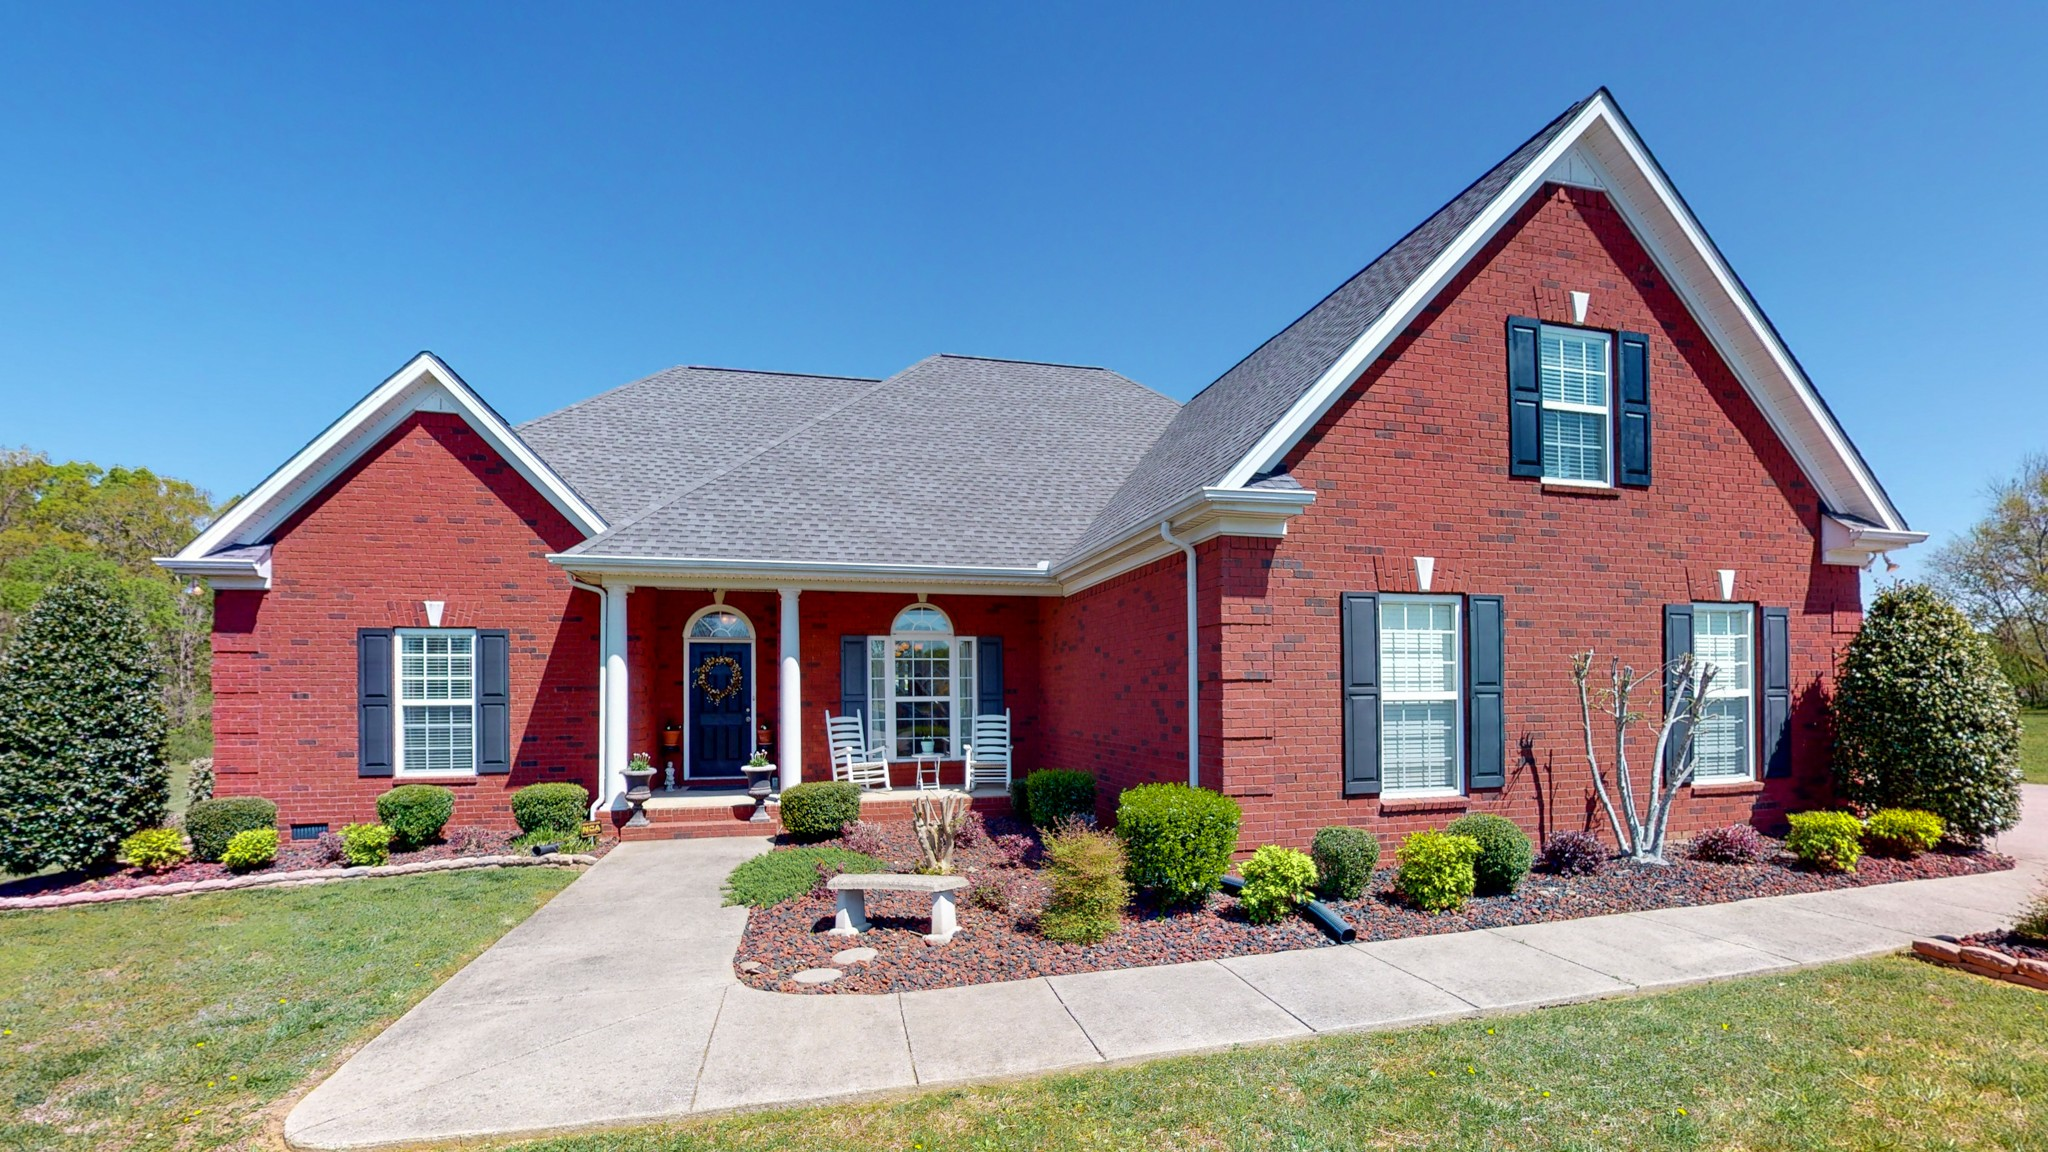 117 Aubry Ct, Rockvale, TN 37153 - Rockvale, TN real estate listing